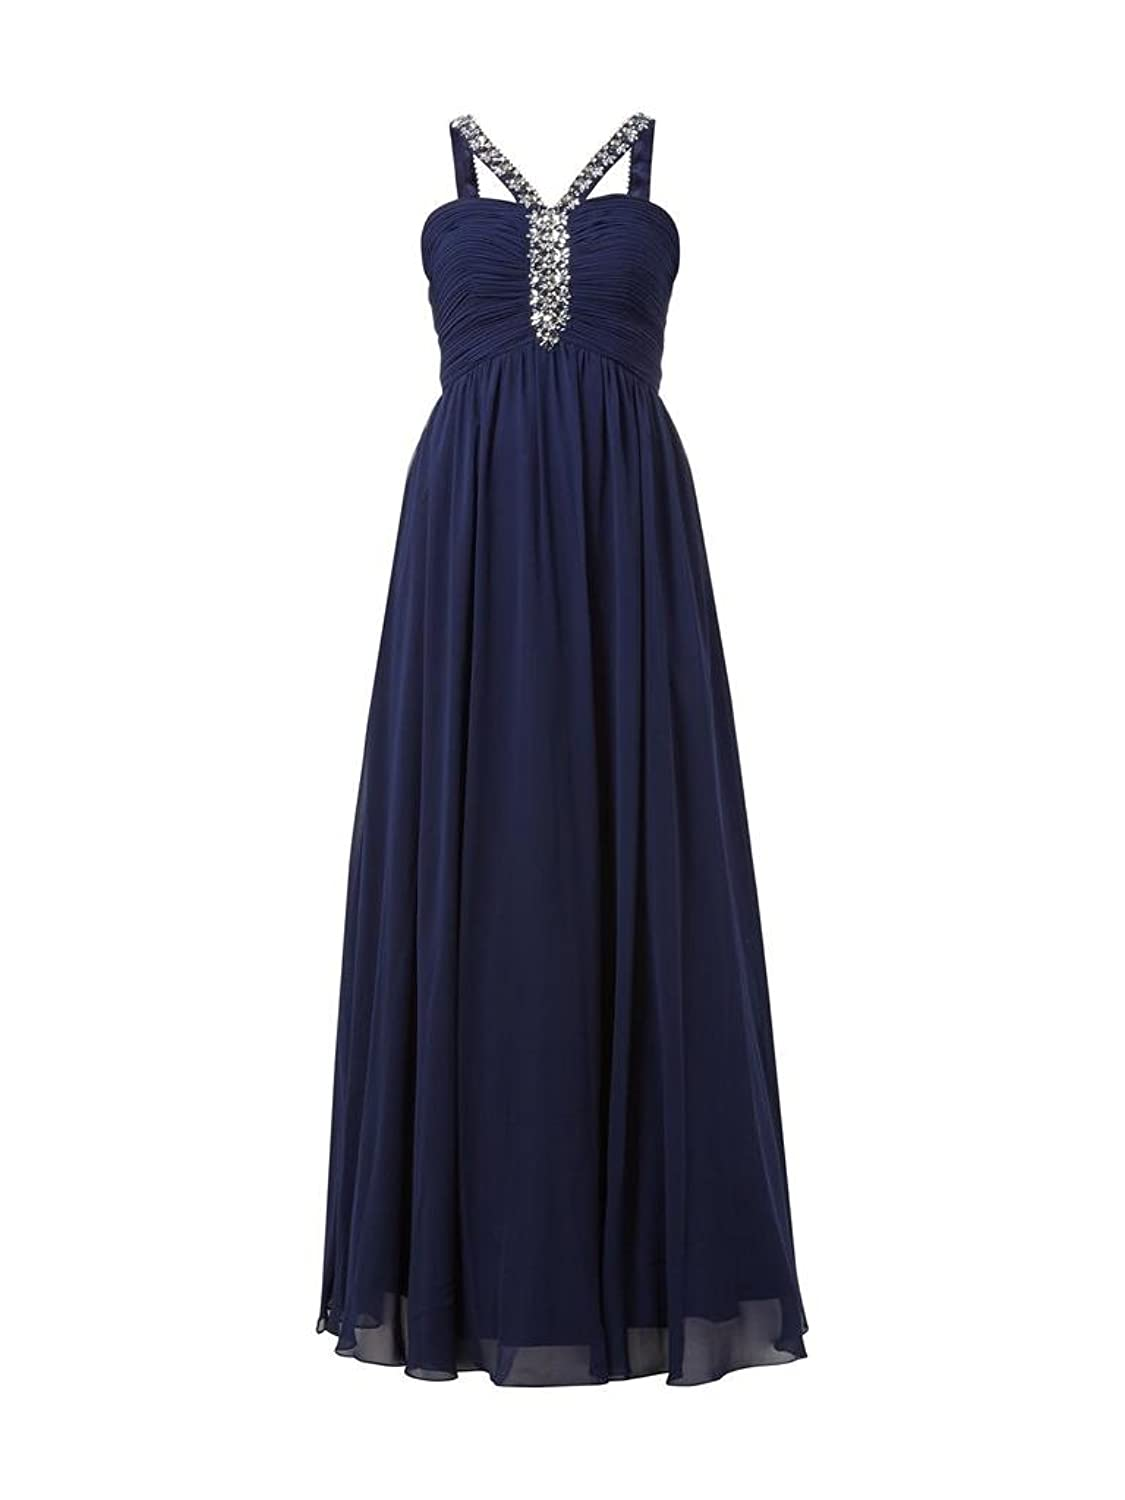 Charm Bridal Chiffon Beaded Mother of the Bride Women Dress with Spaghetti Strap